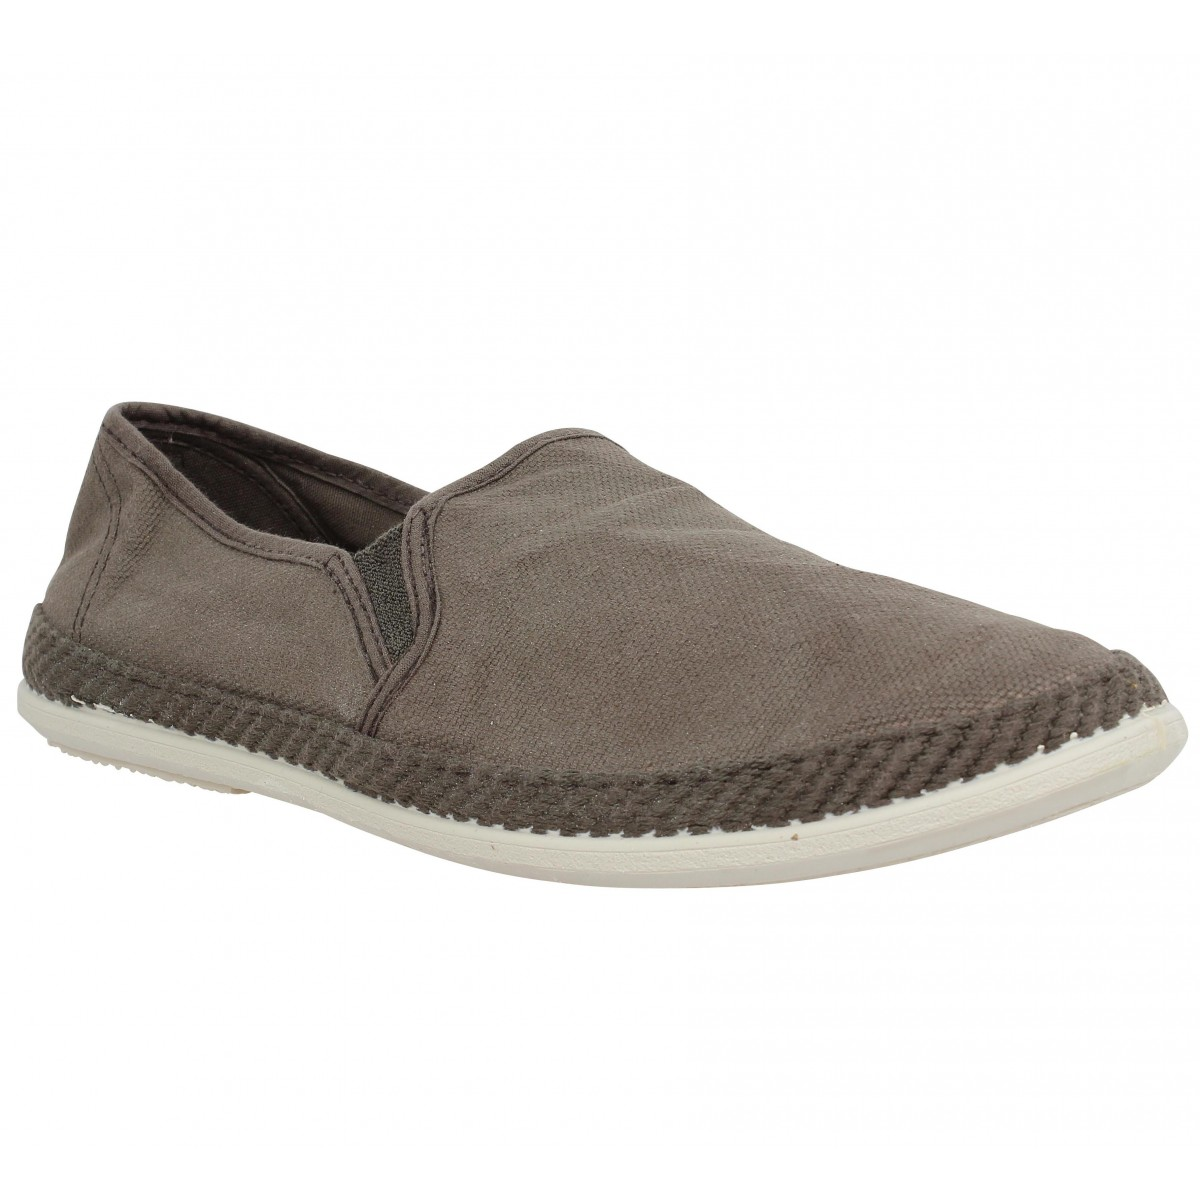 Espadrilles VICTORIA 20004 toile Homme Taupe